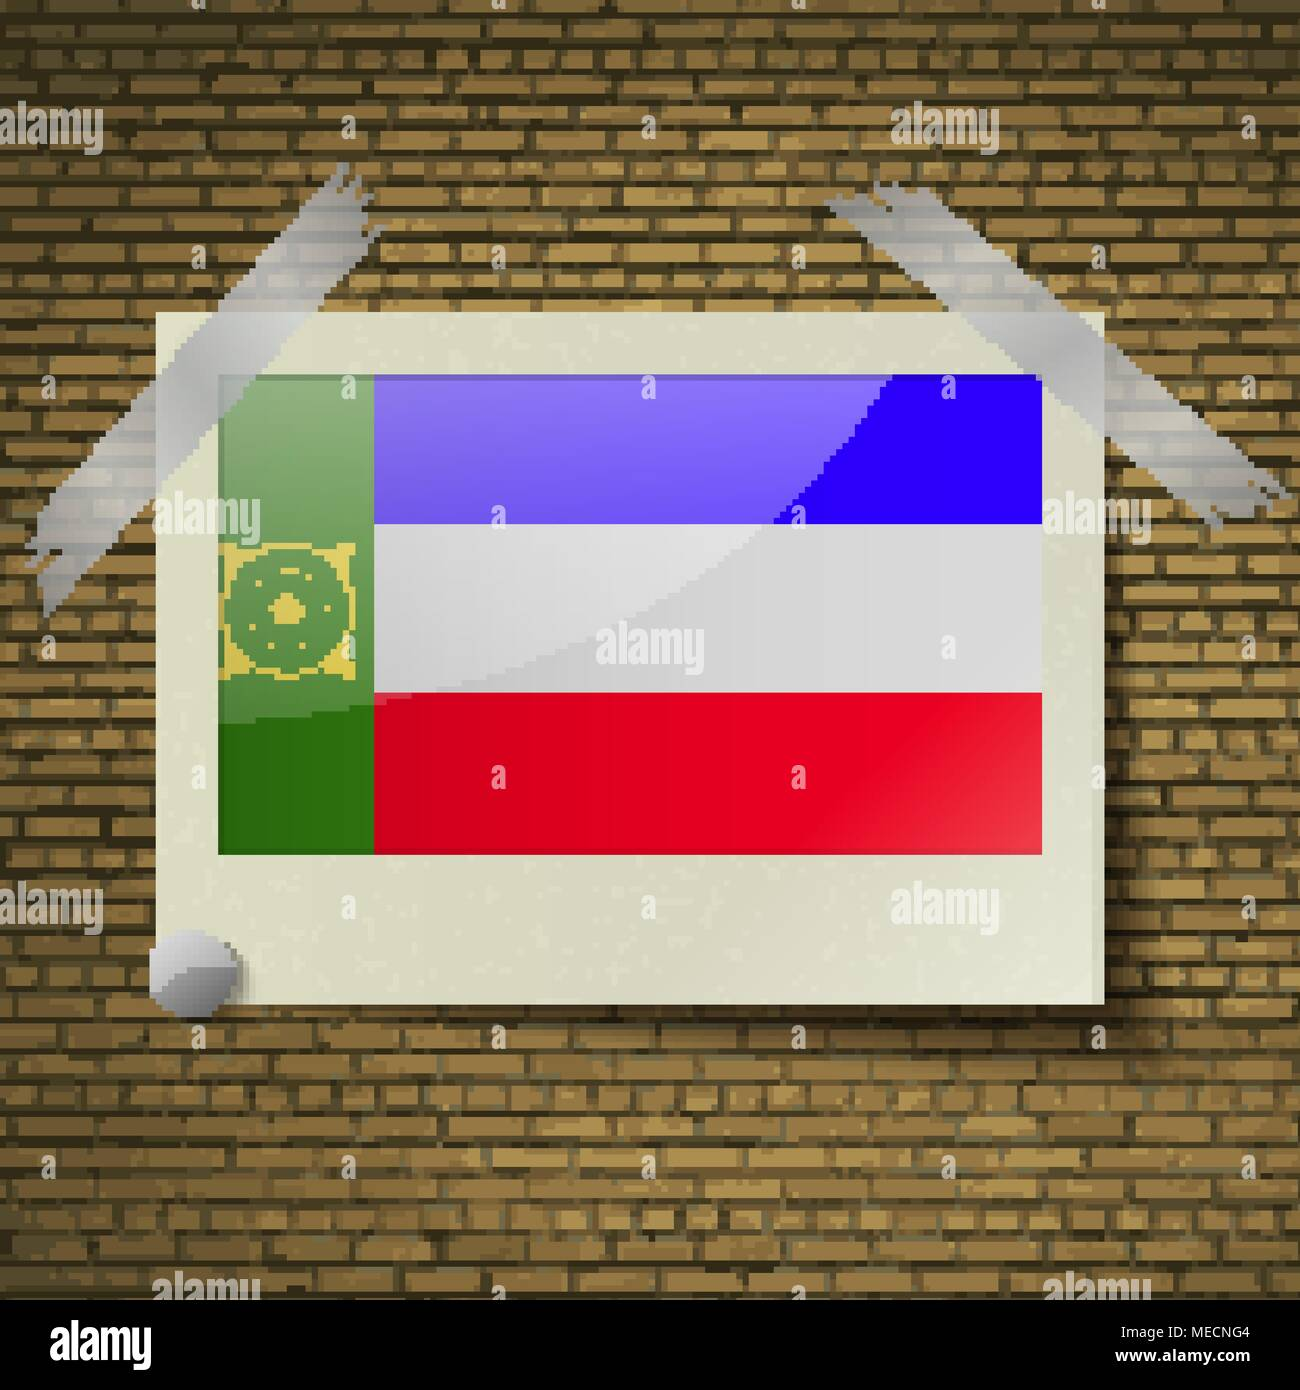 Flags of Khakassia at frame on a brick background. Vector illustration - Stock Image